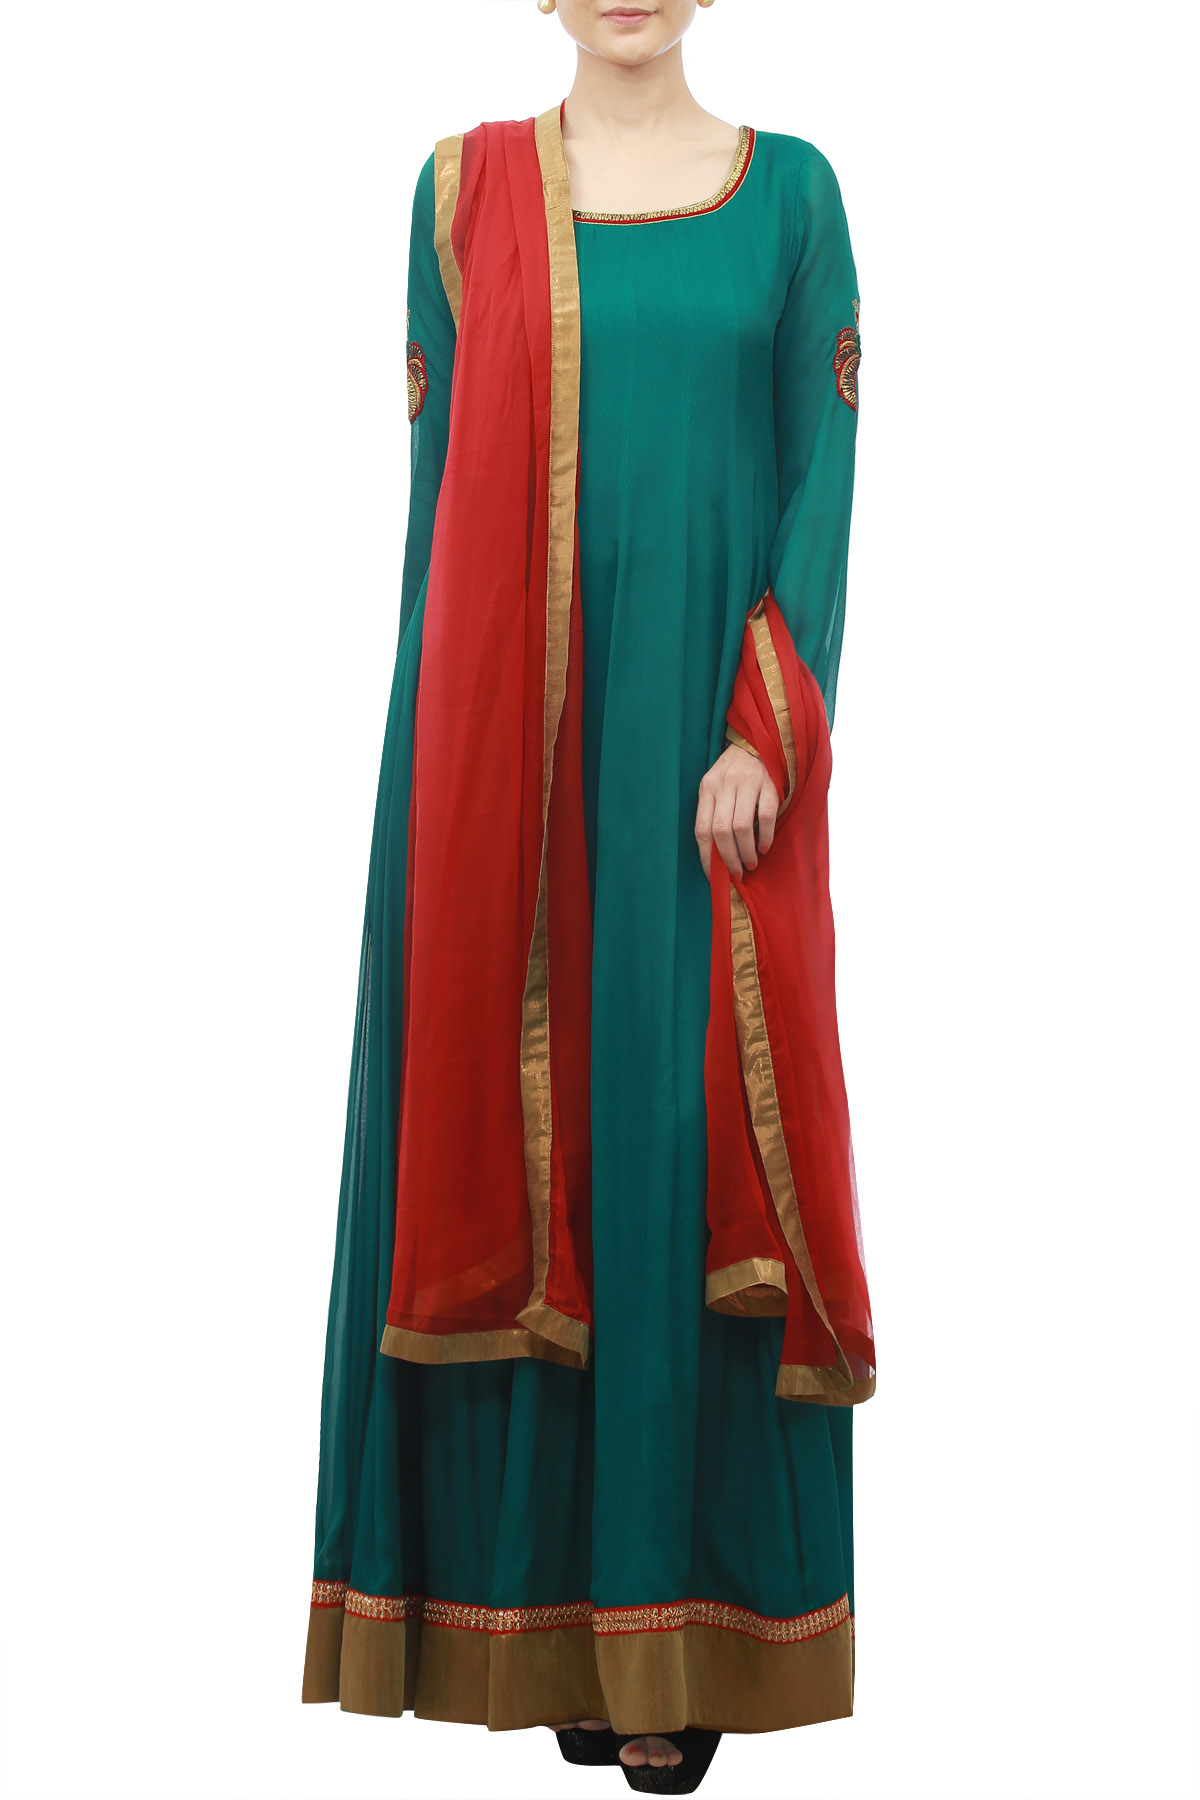 EmbroideRed Dark Teal Anarkali with Red Dupatta